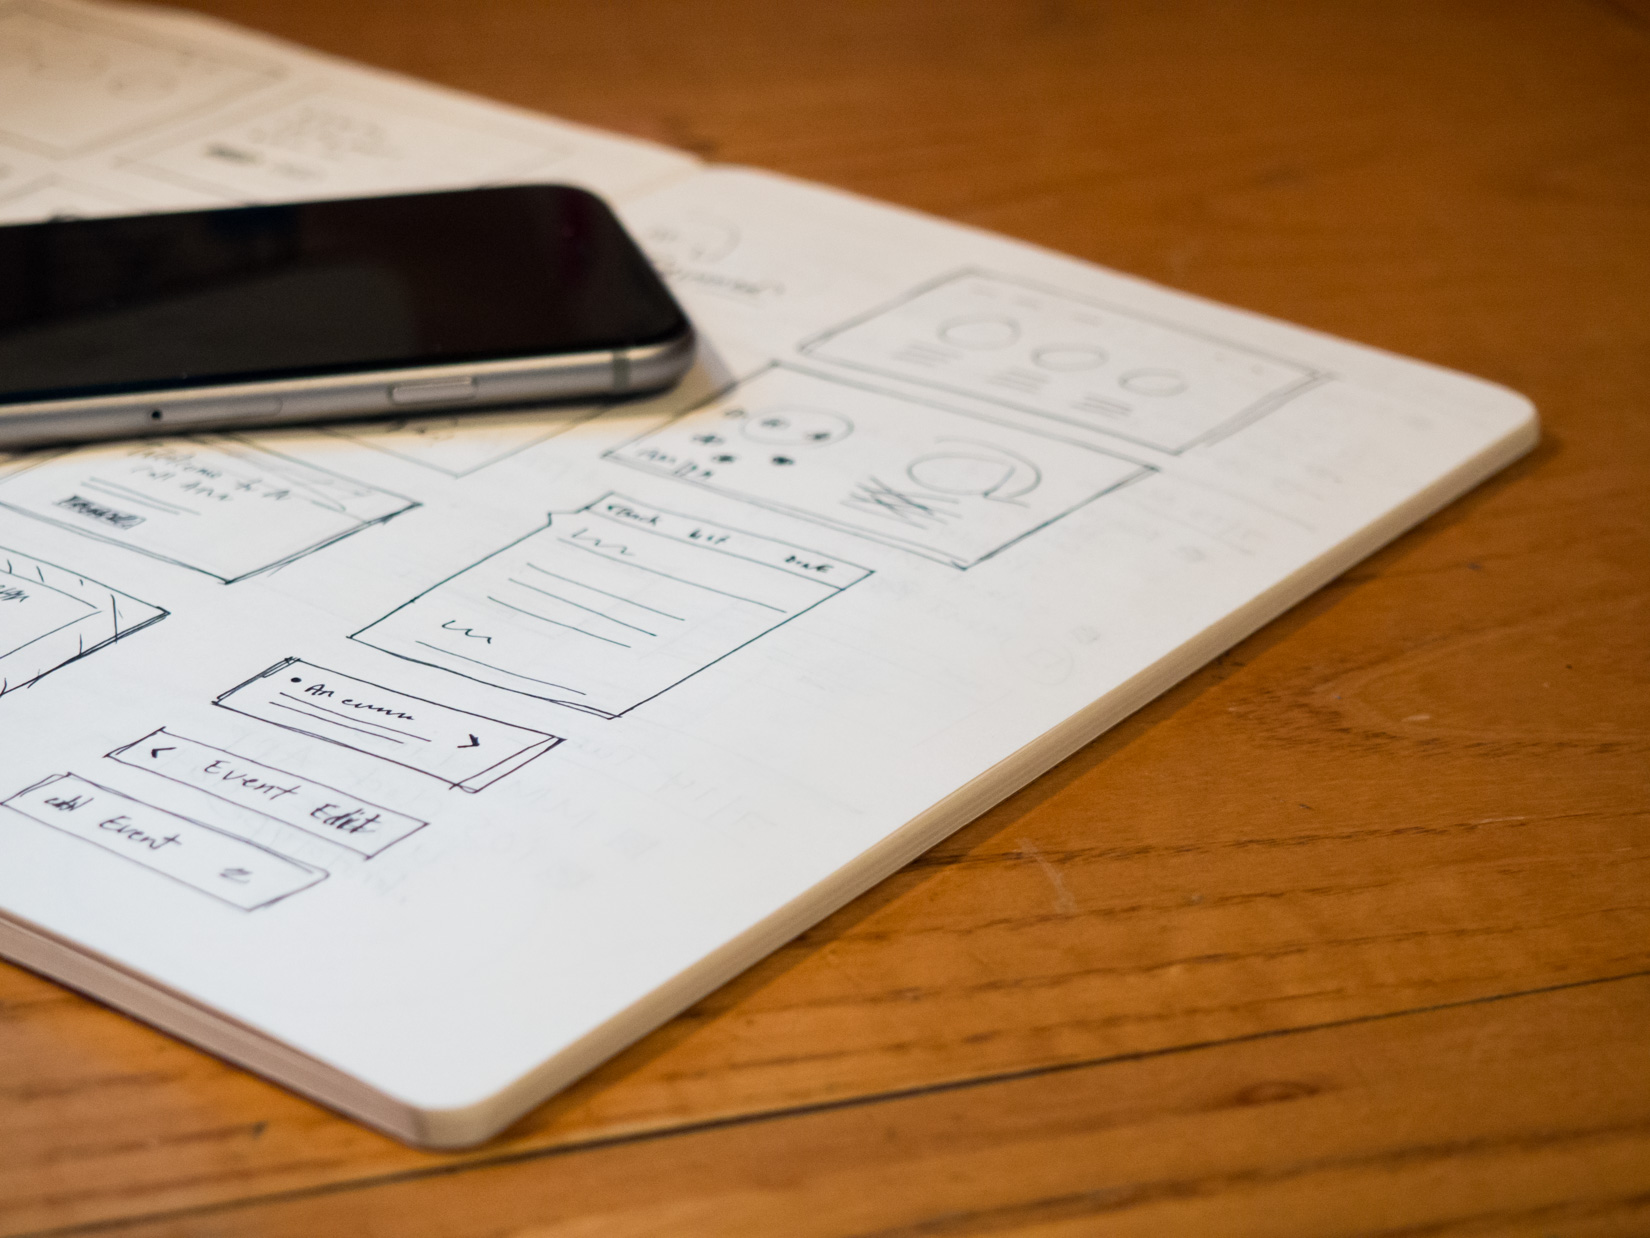 Notebook with Sketches and Phone on Desk